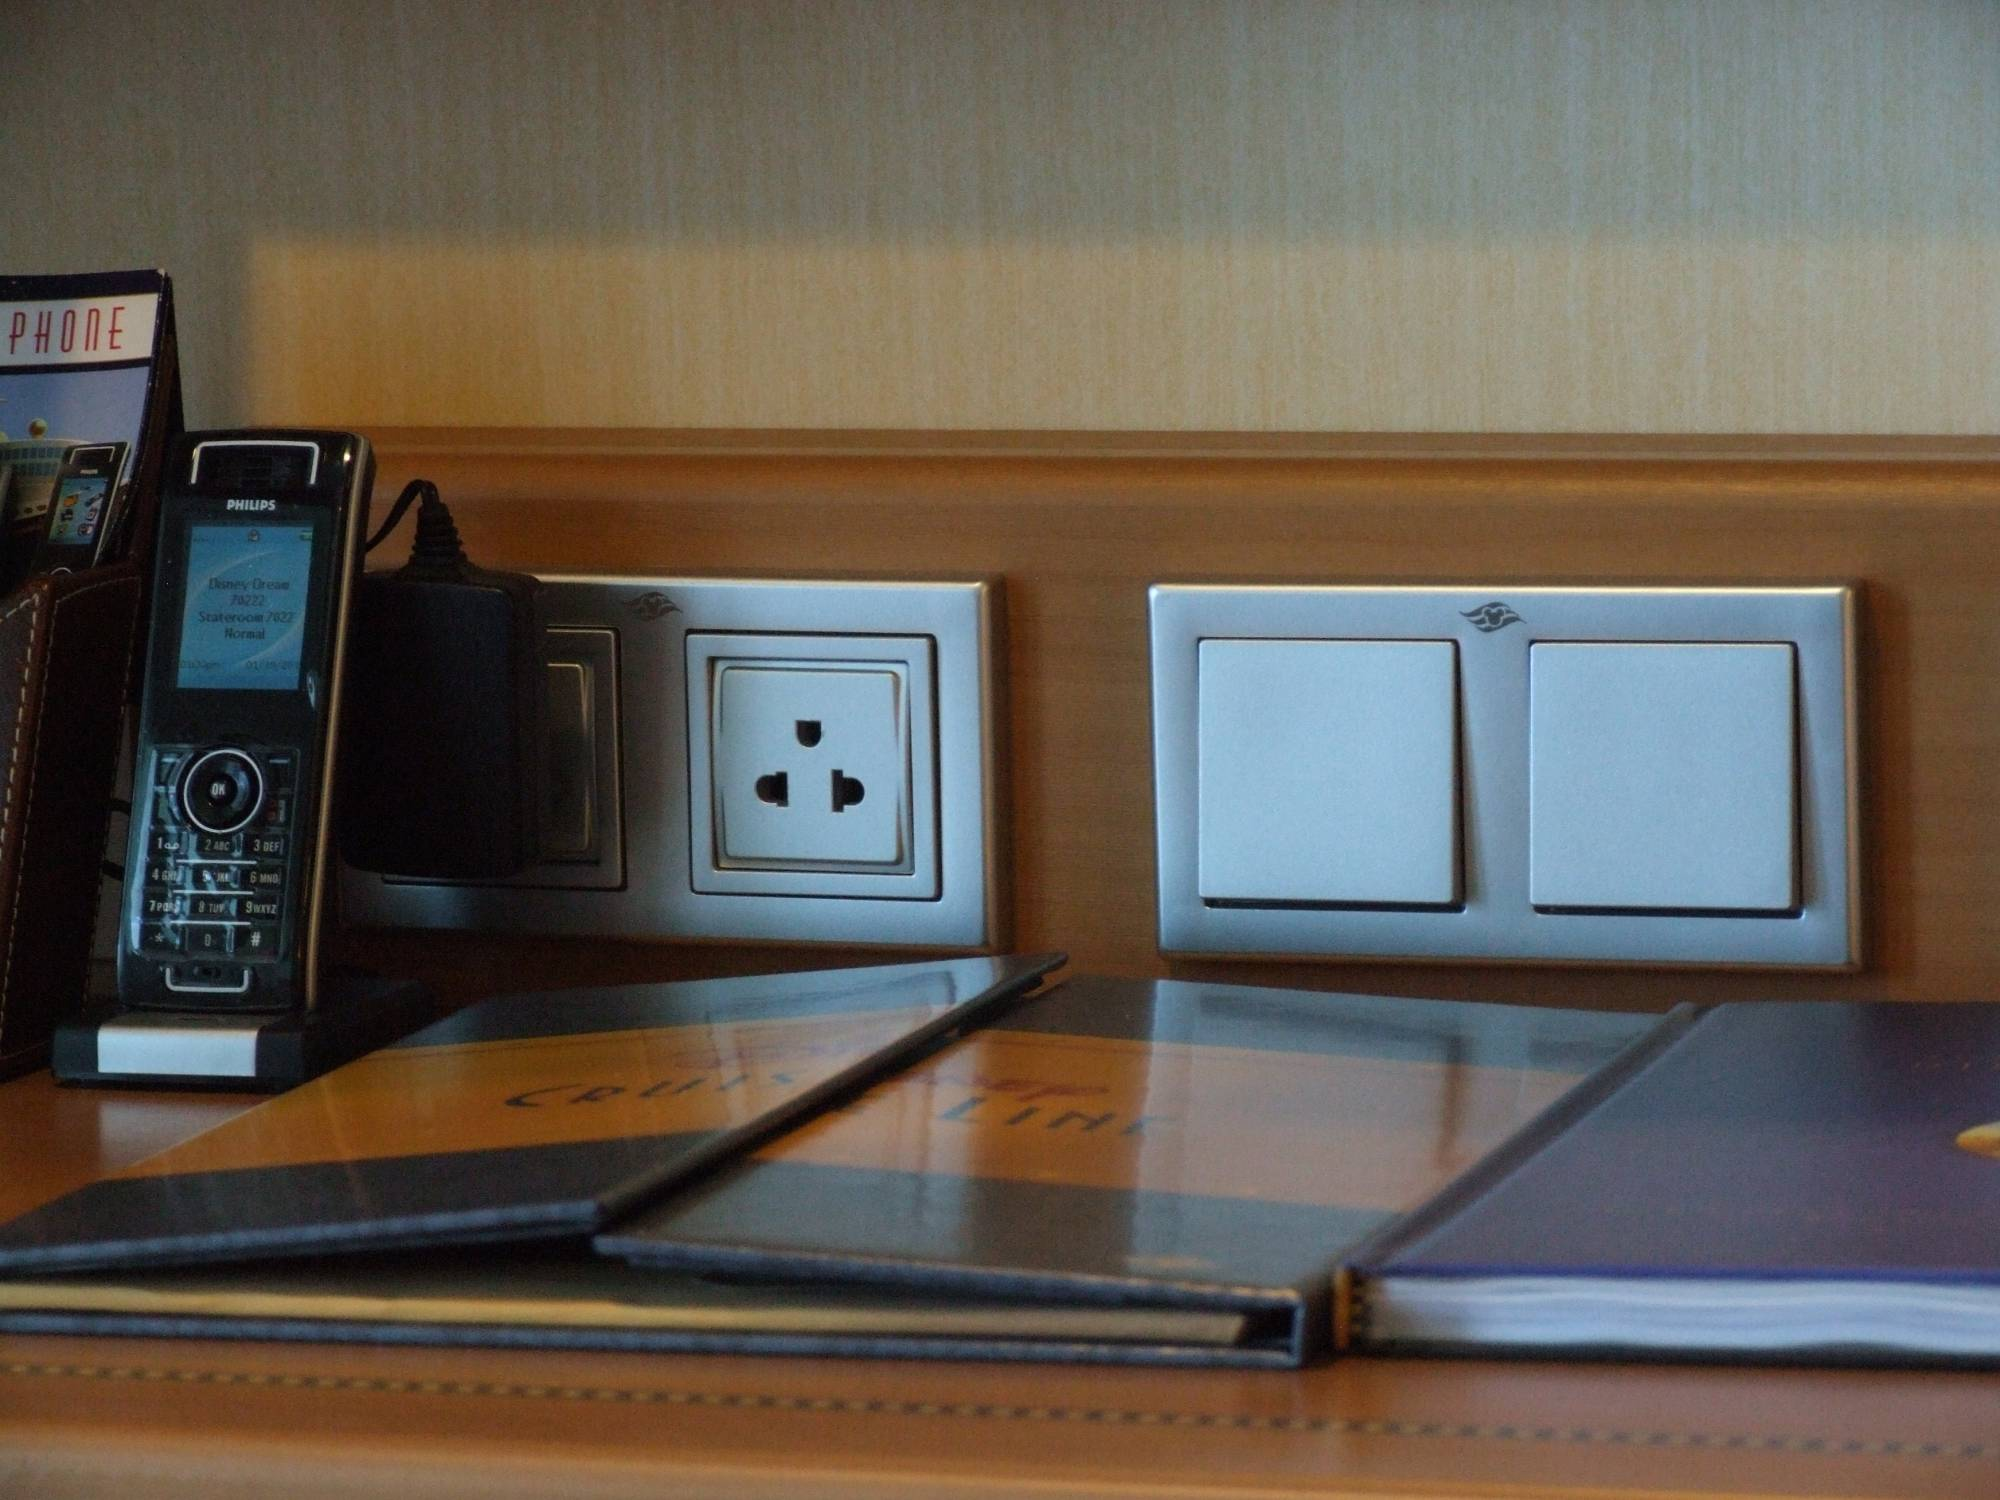 Learn how to keep your devices charged while onboard a Disney Cruise |PassPorter.com